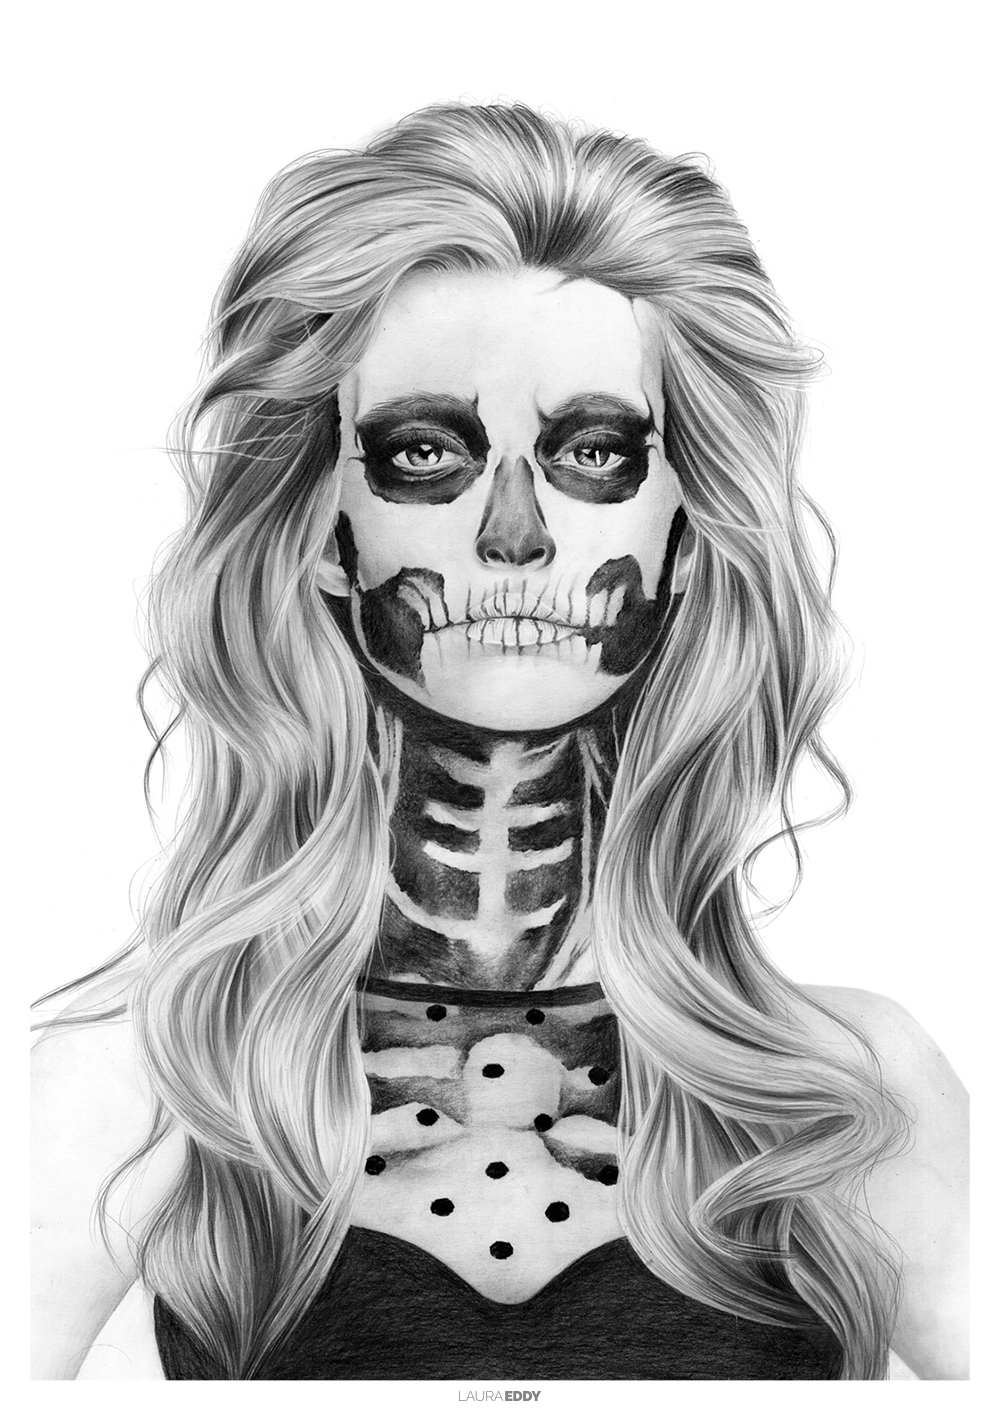 laura-eddy-drawing-skull-girl-branded.jpg